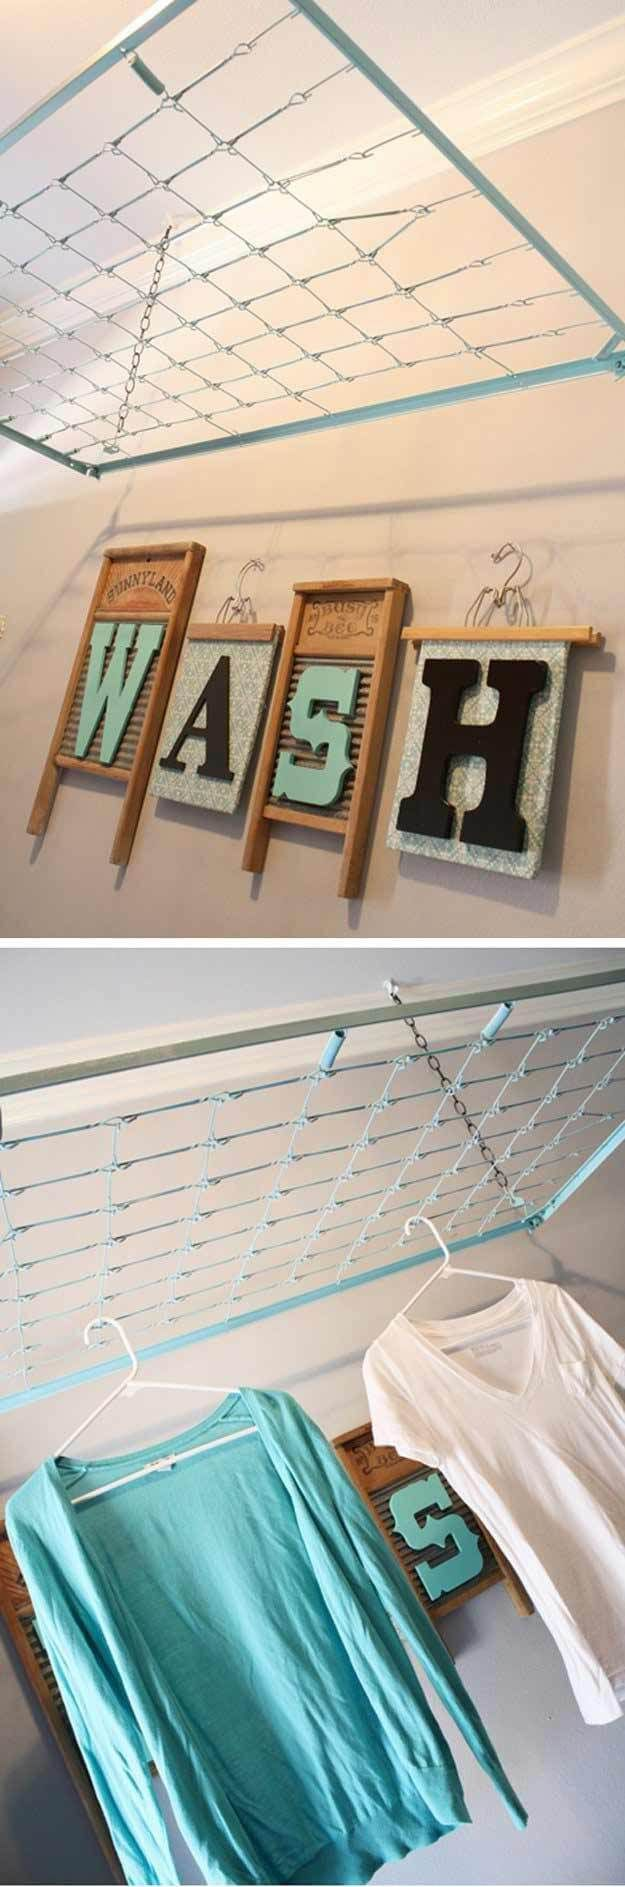 "DIY Washboard ""Wash"" Wall Art"